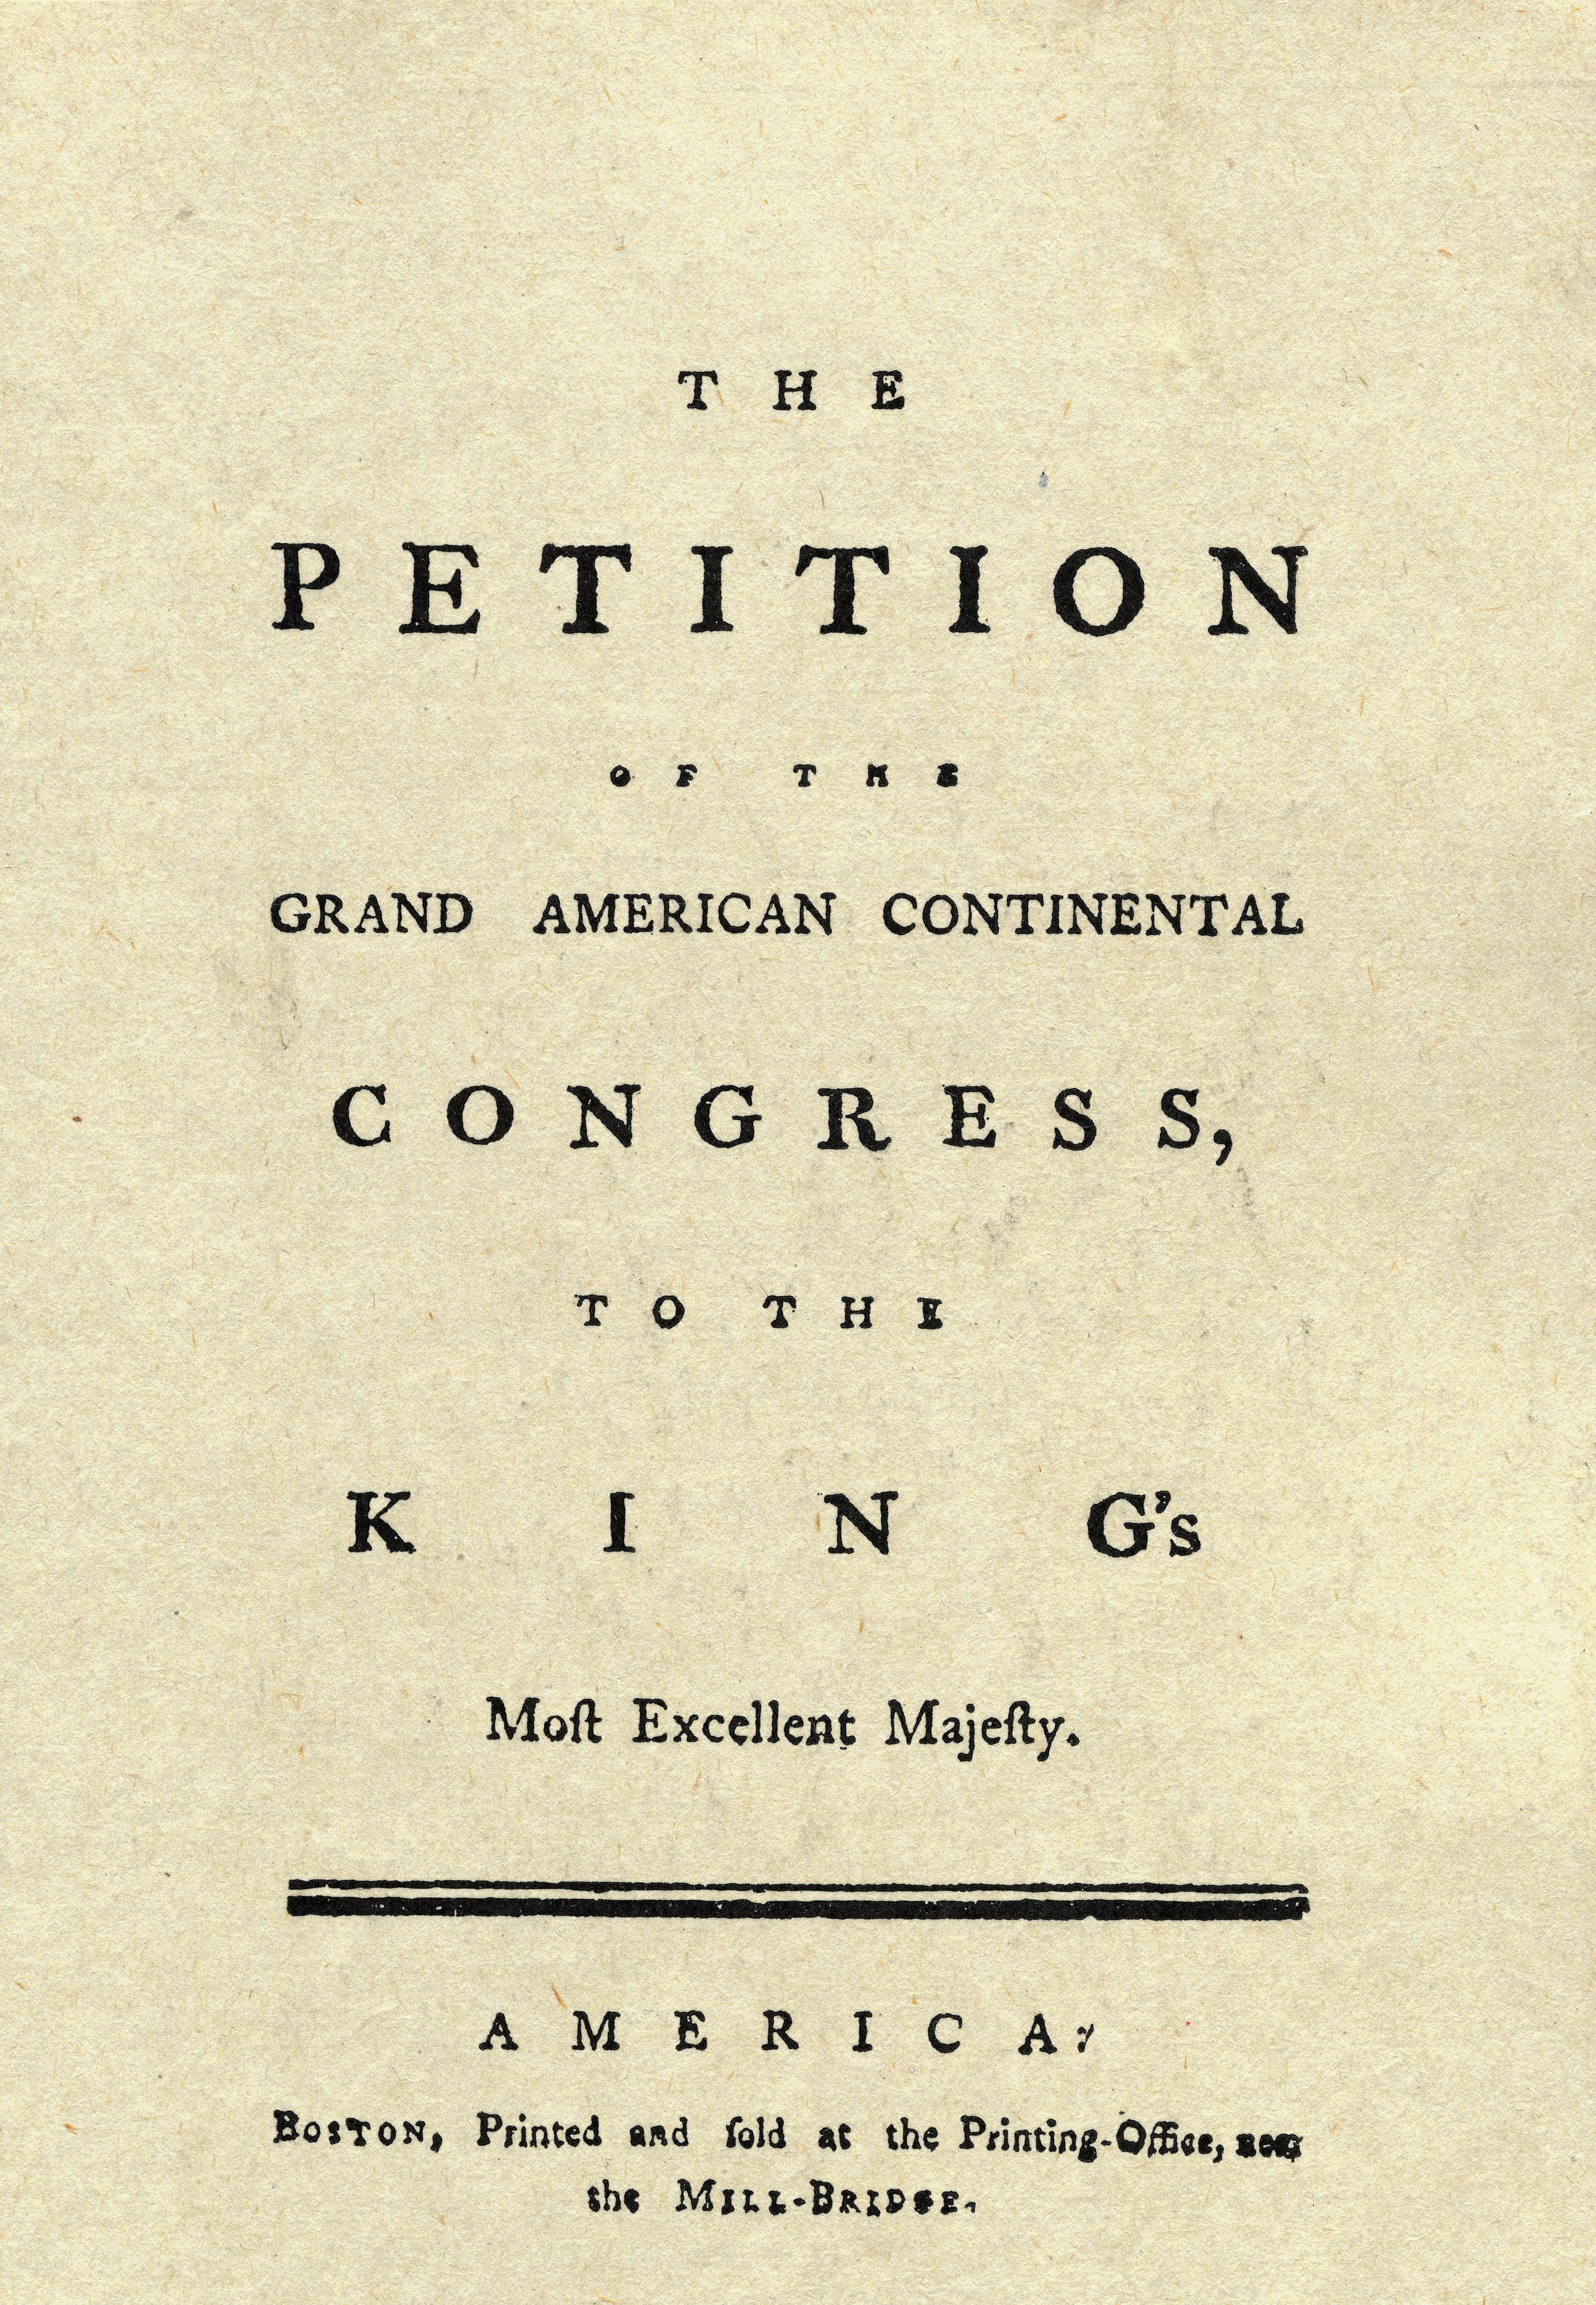 a look at the grievances against the british crown by the american colonists The french and indian war took on a new significance for the british north american colonists when william pitt the elder decided that major military resources needed to be devoted to north america in order to win the war against france.